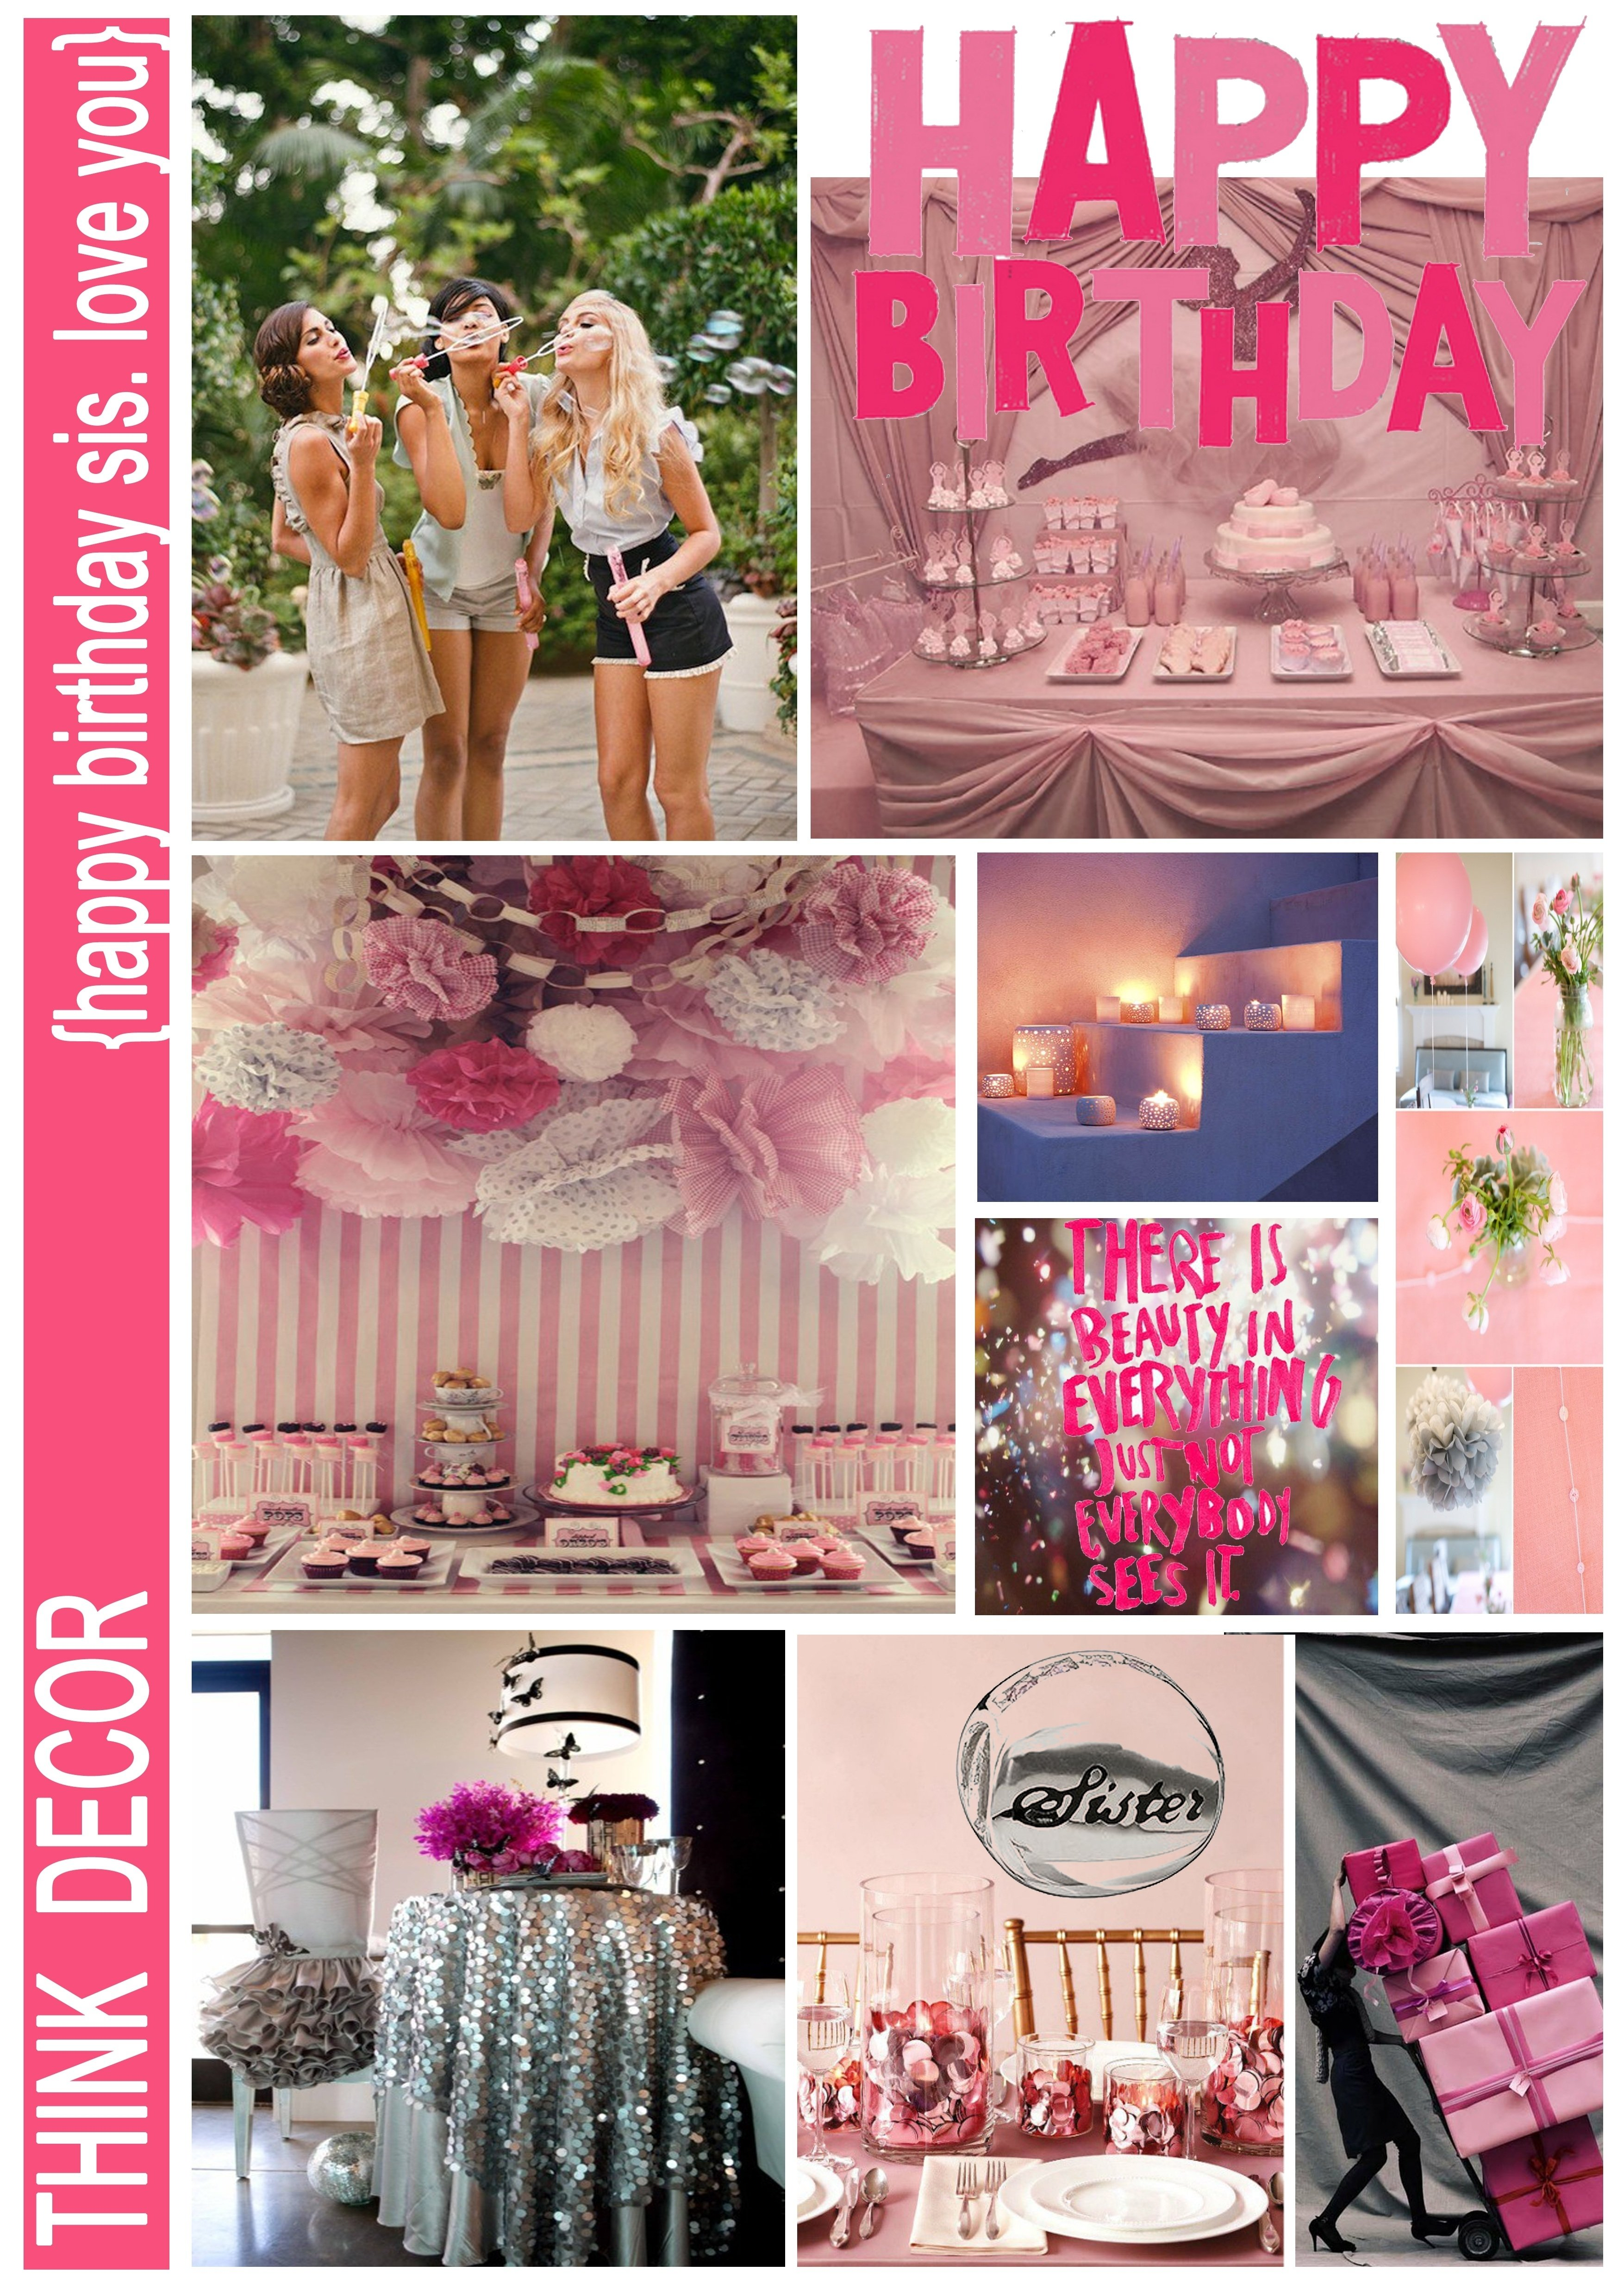 10 wonderful 21 birthday party ideas for her